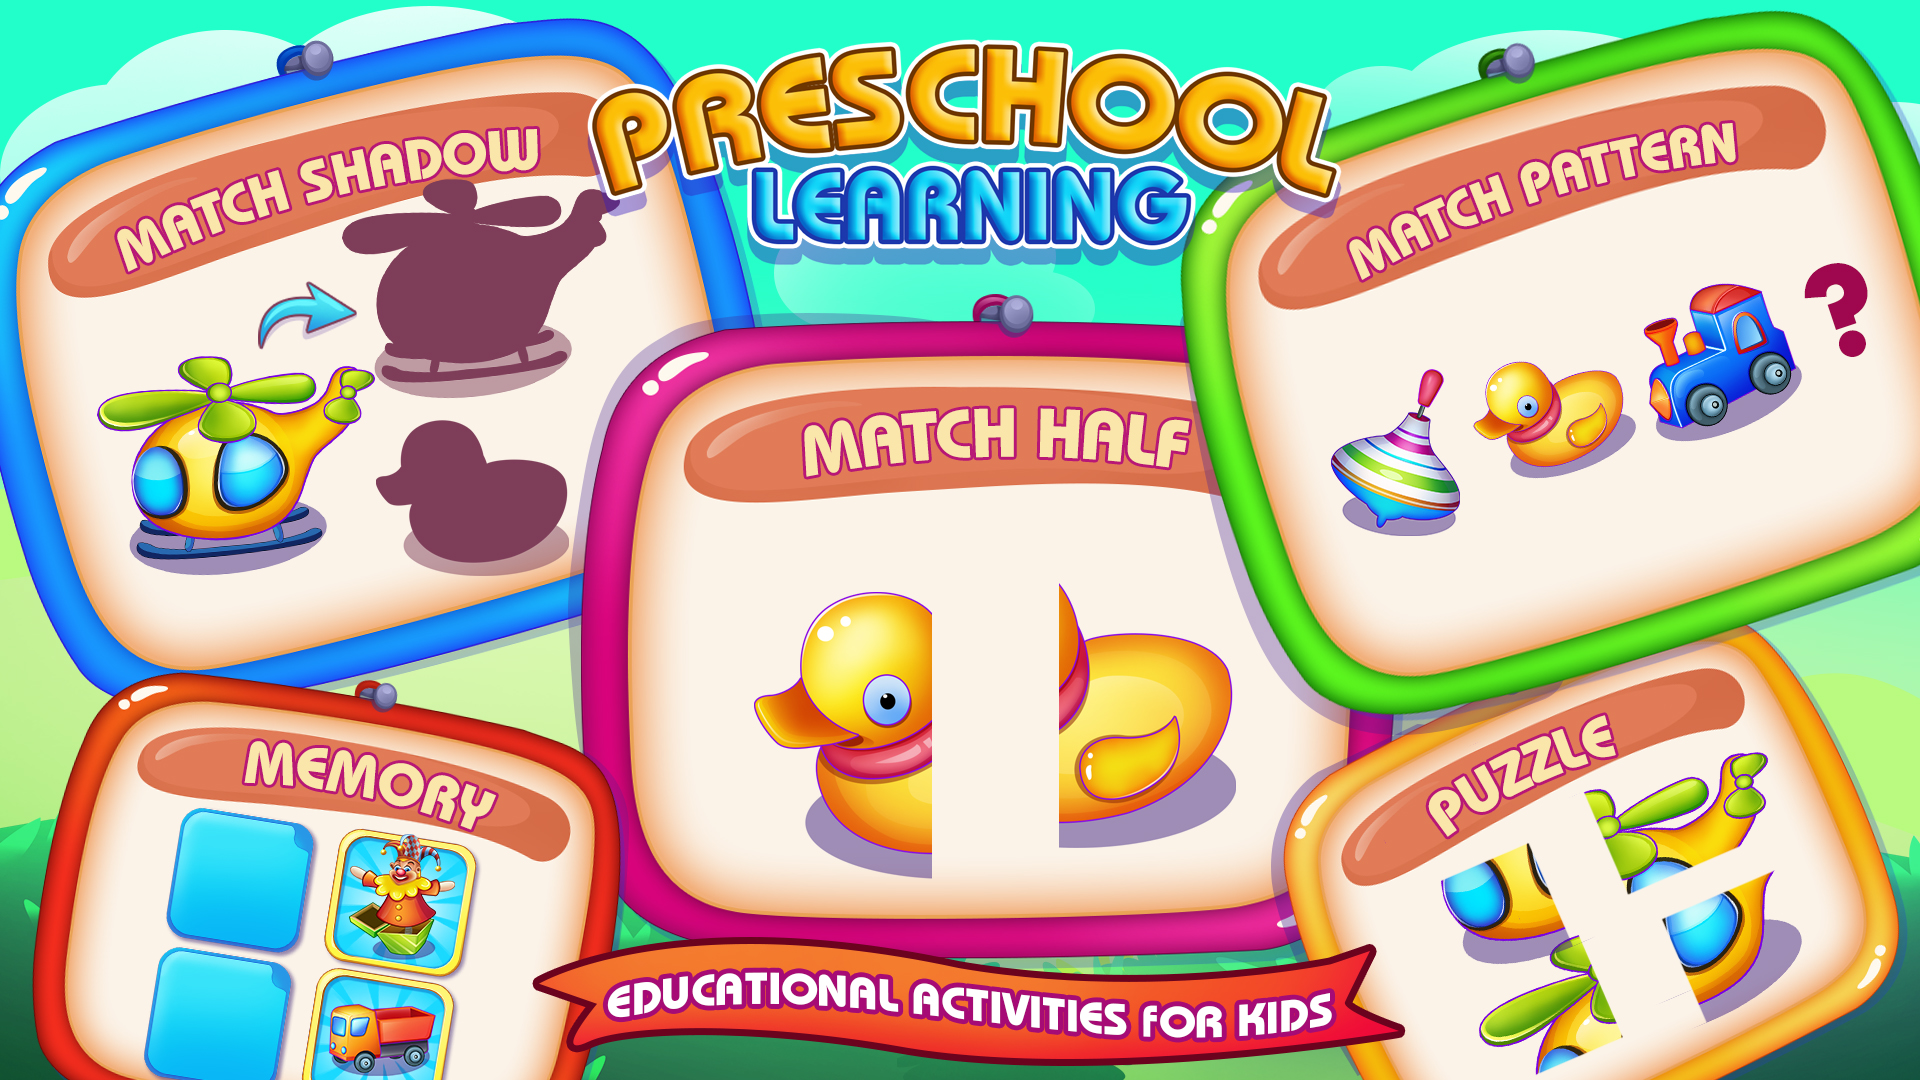 Preschool Learning - Cognitive & General Abilities